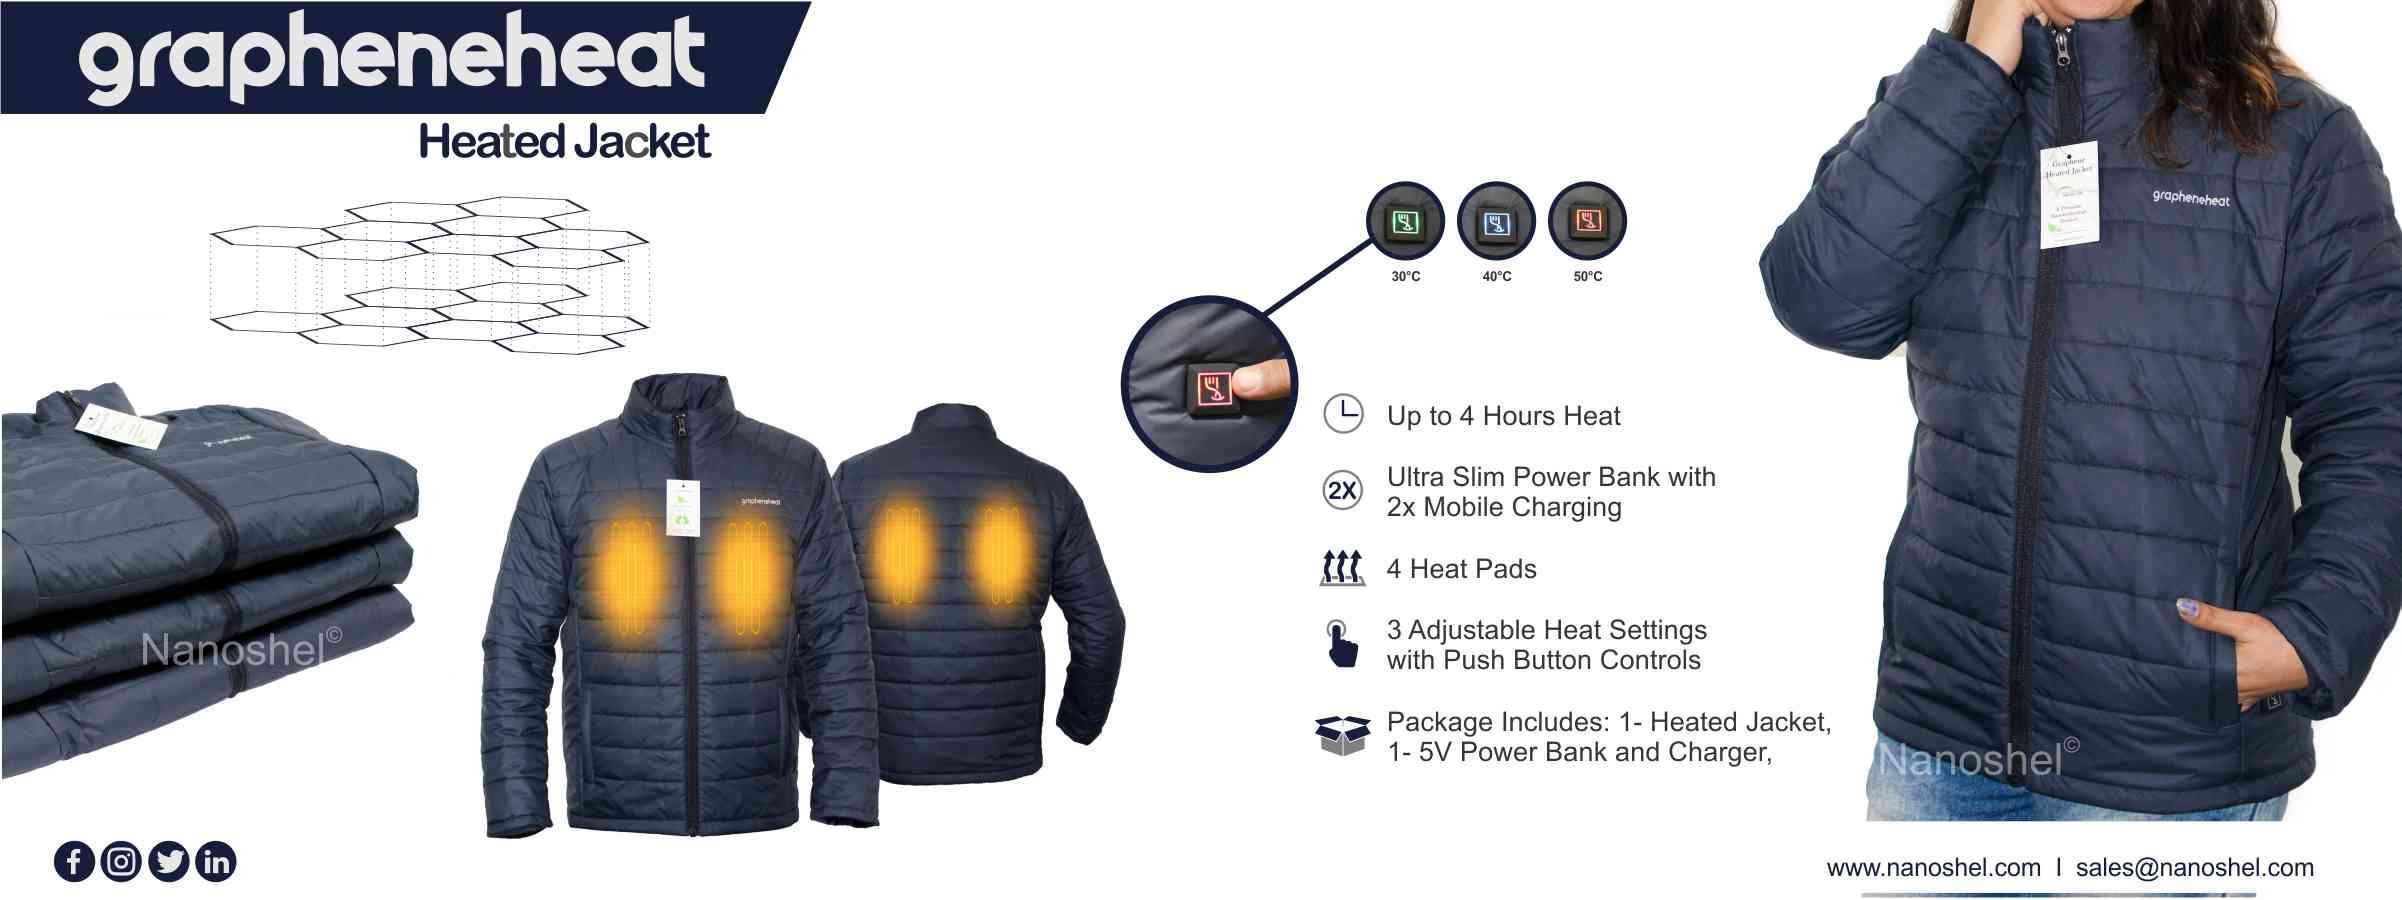 Graphene Heated Jacket